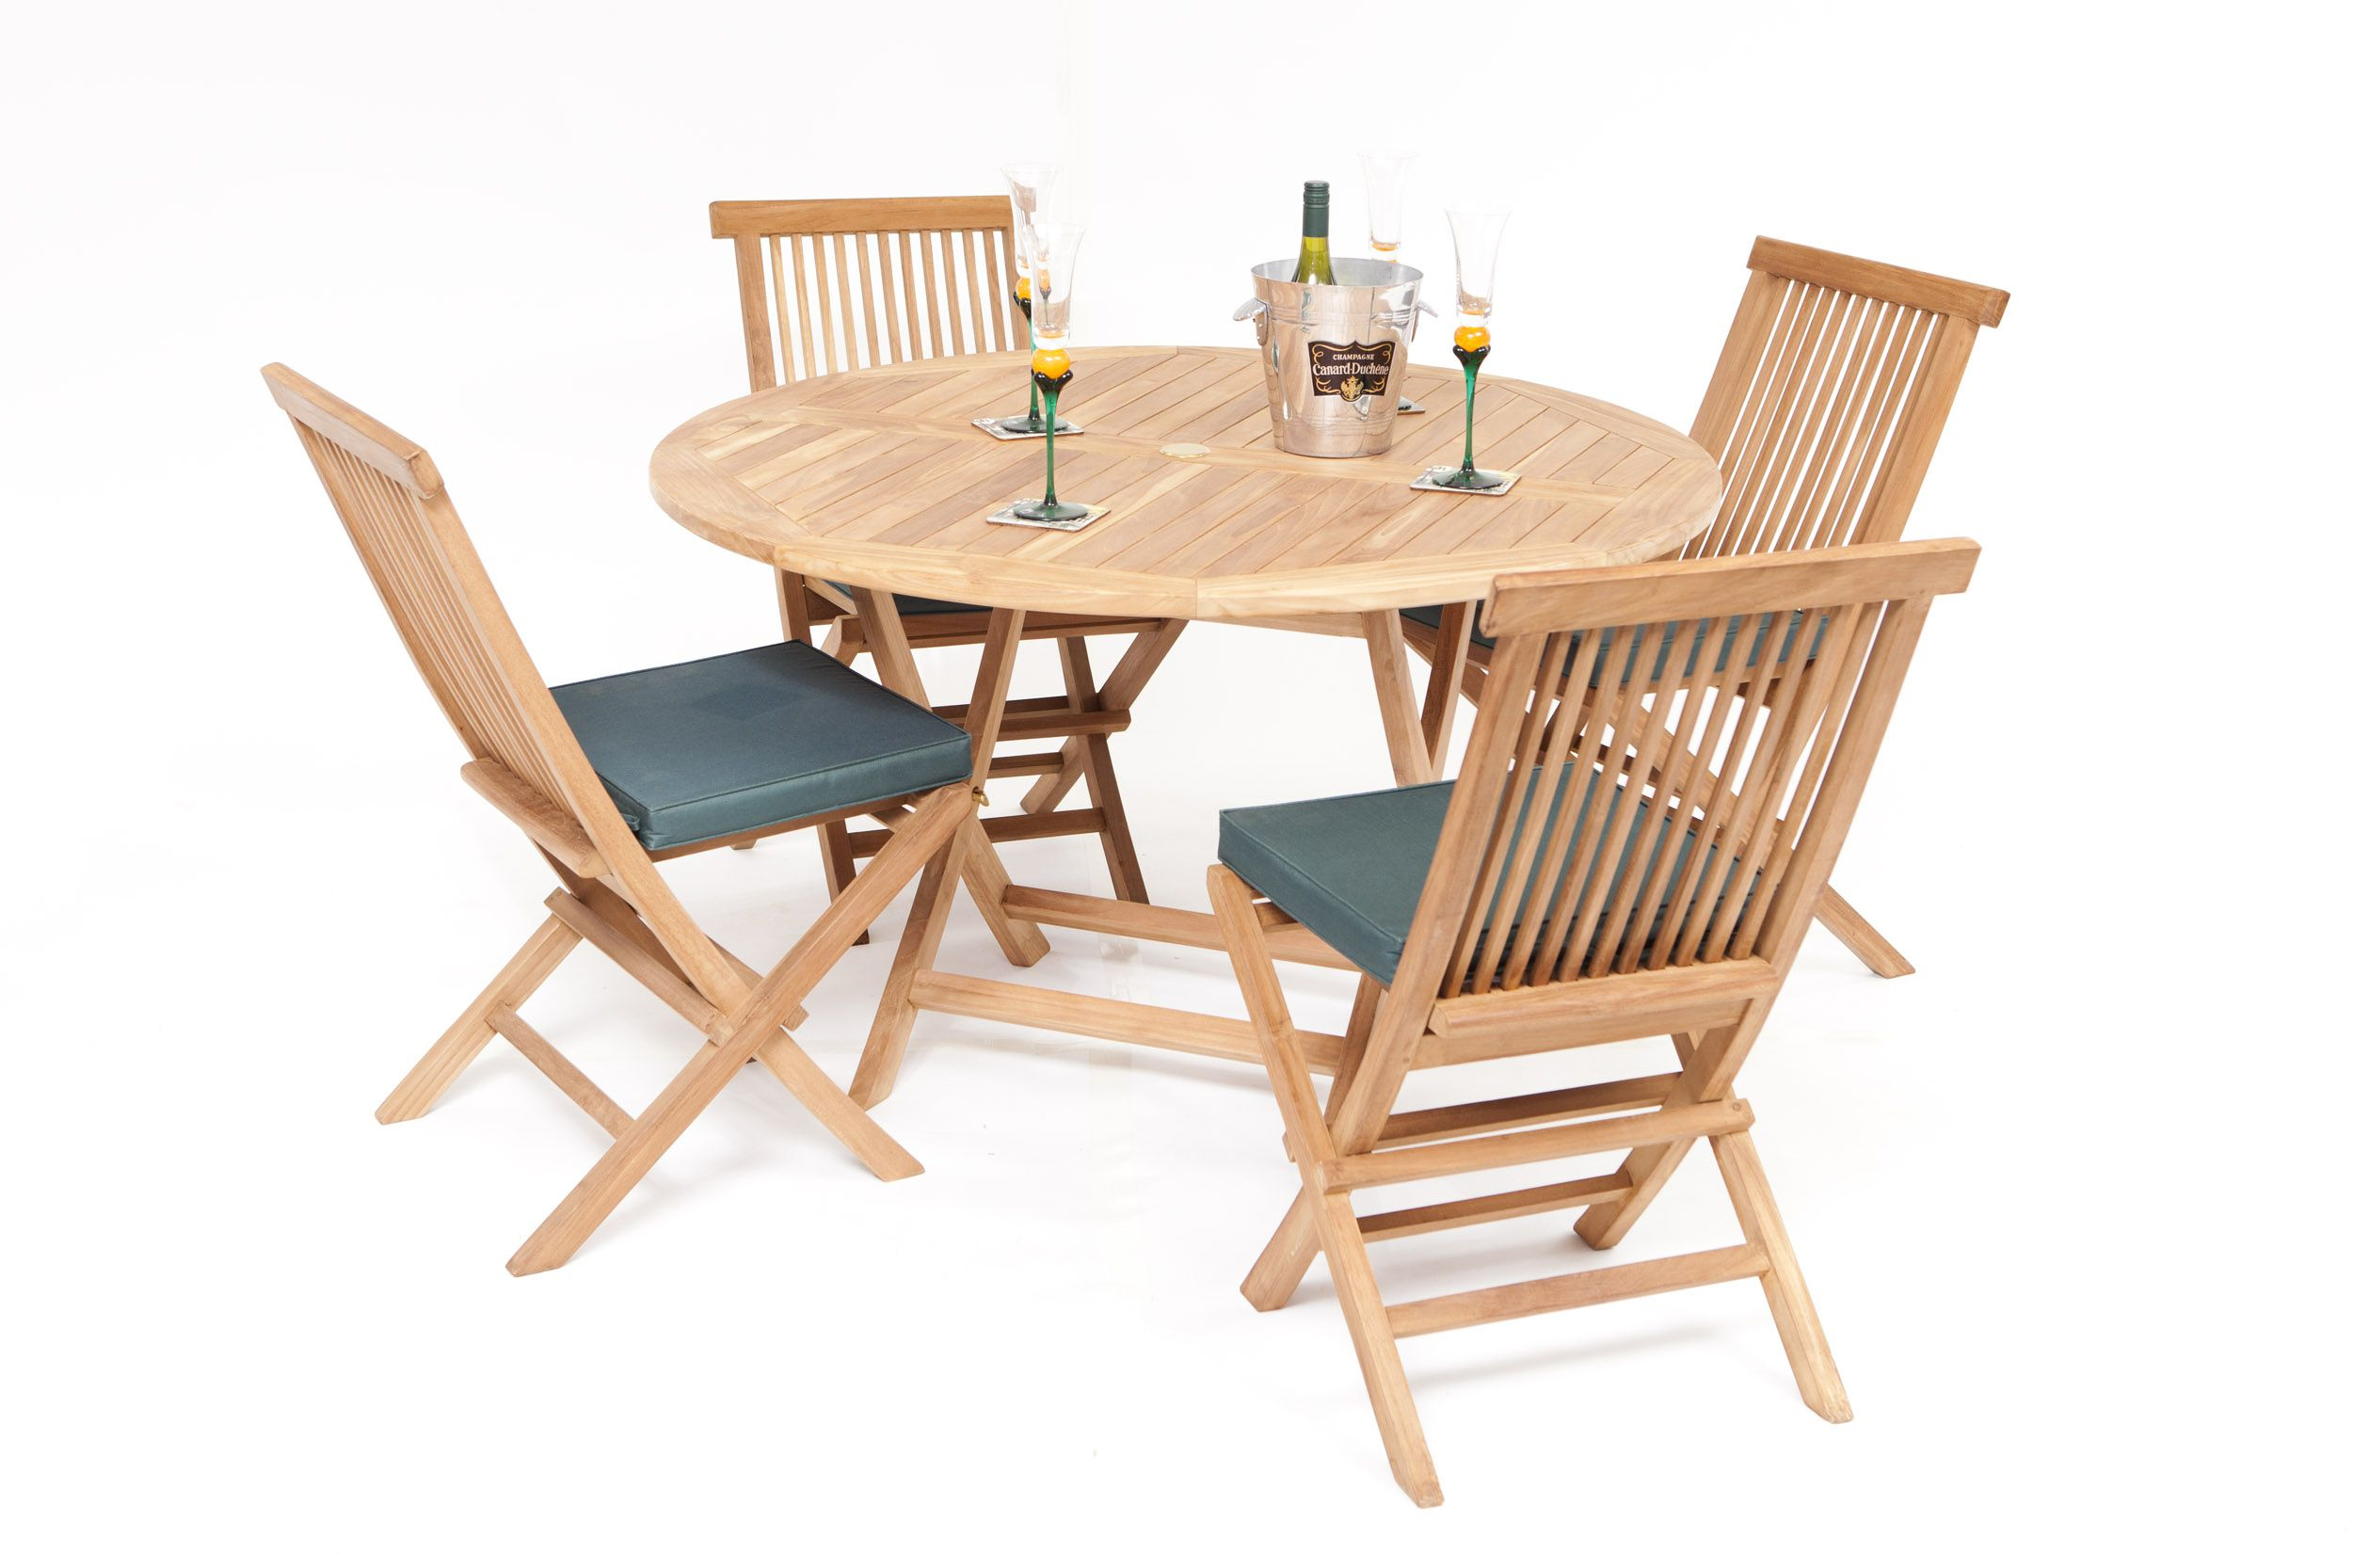 Biarritz Teak Garden Furniture Dining Set